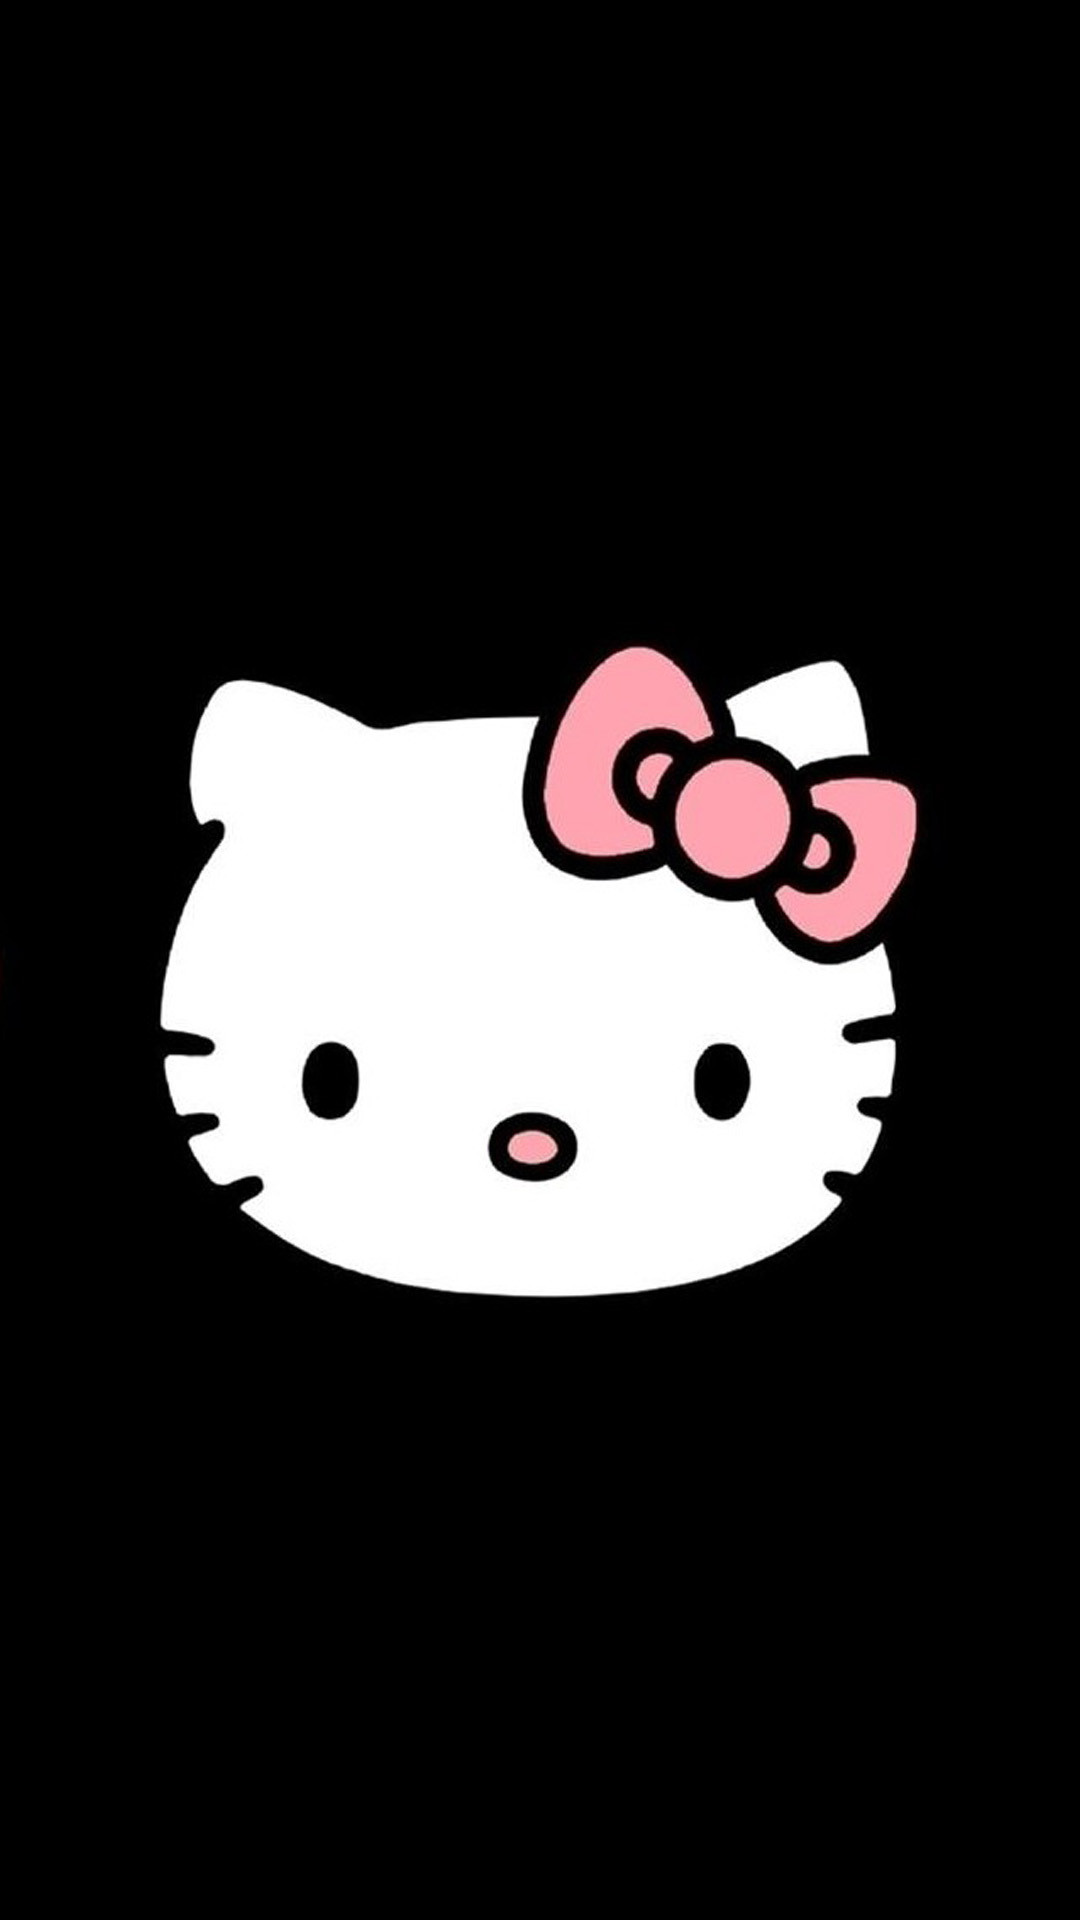 Cute wallpaper for iphone 80 images - Cute wallpapers ...